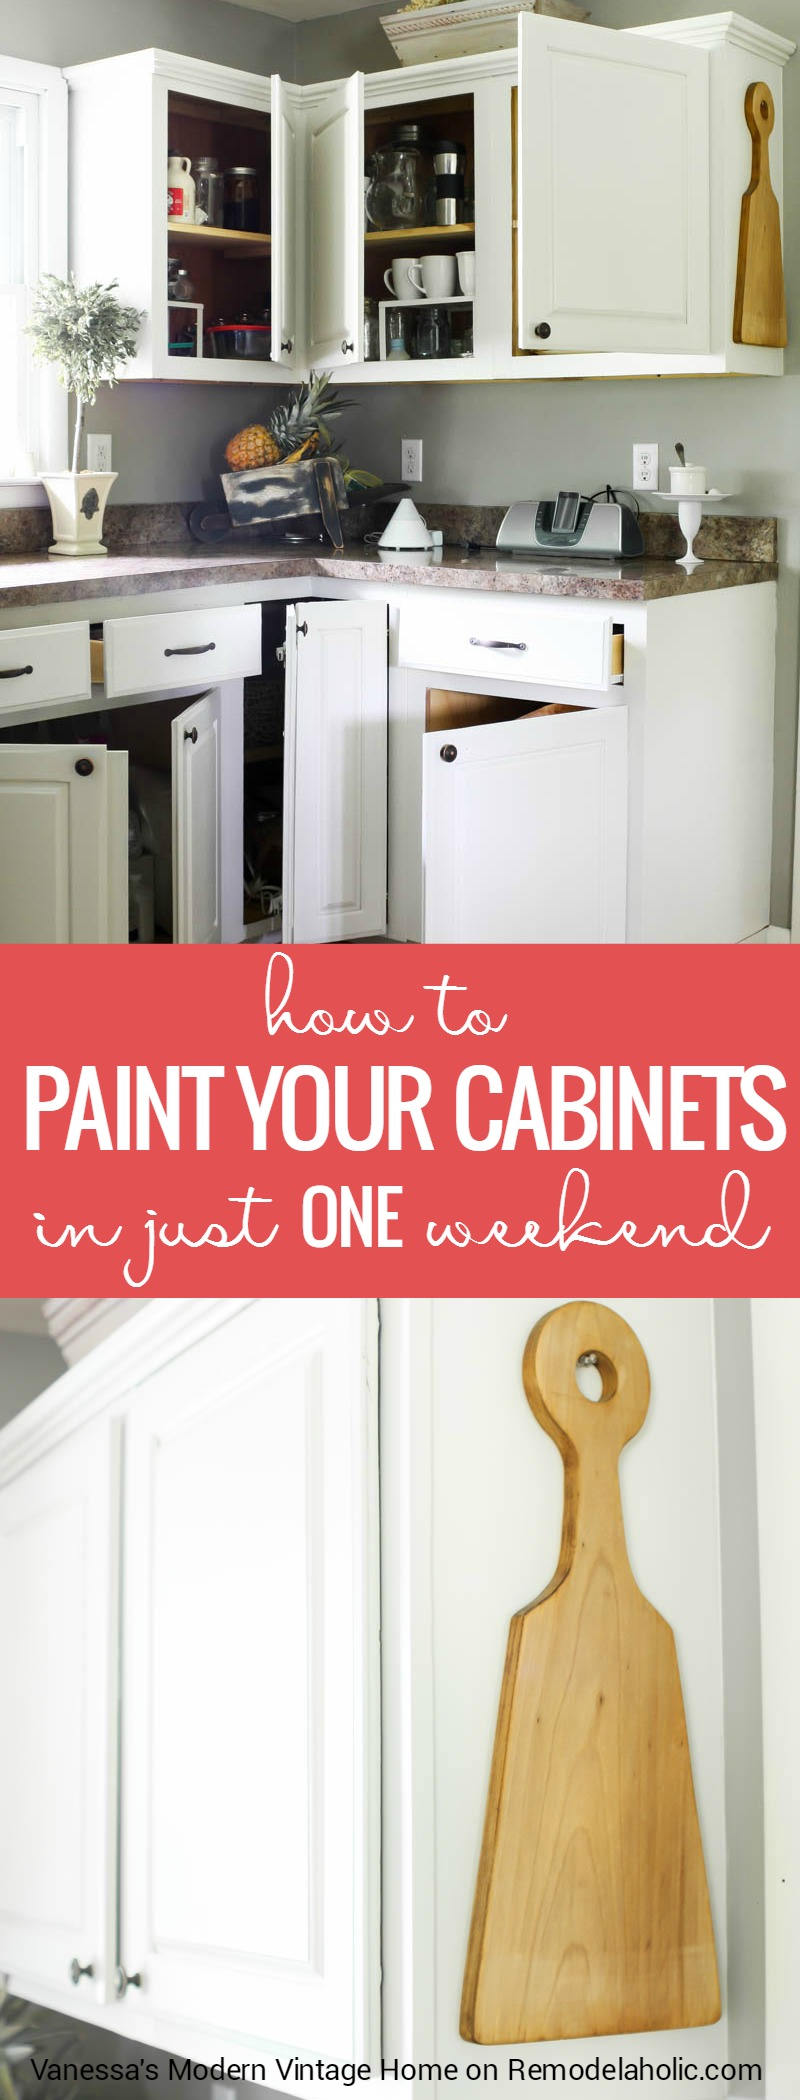 how to paint your kitchen cabinets in one weekend 2186